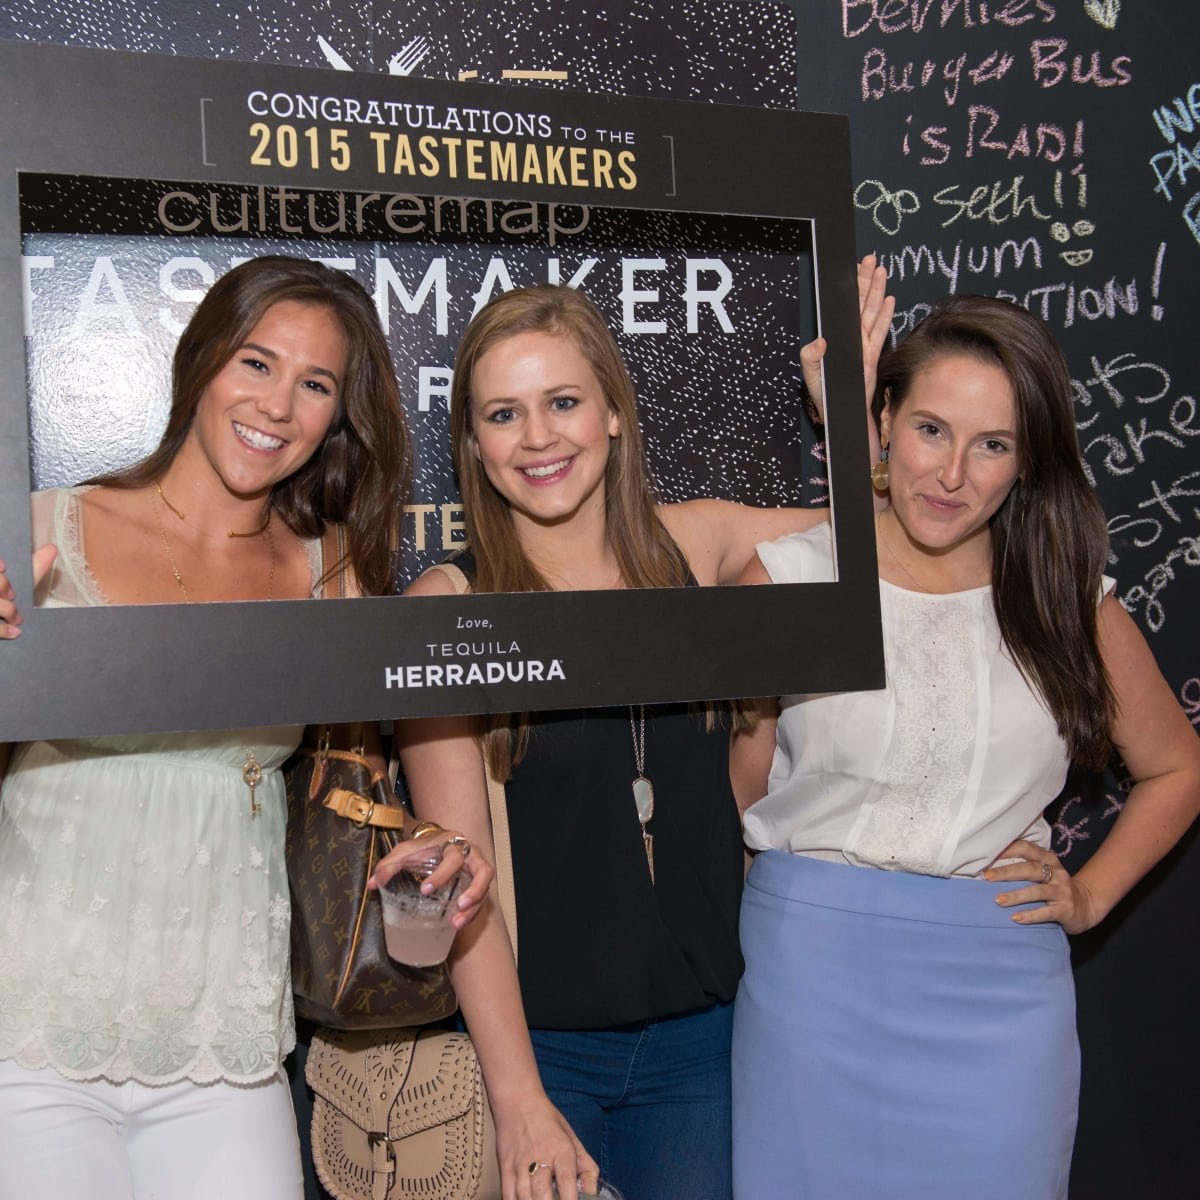 Houston, Tastemakers, May 2015, Julie Marin, Aimme Putnam, Katy Dunbar